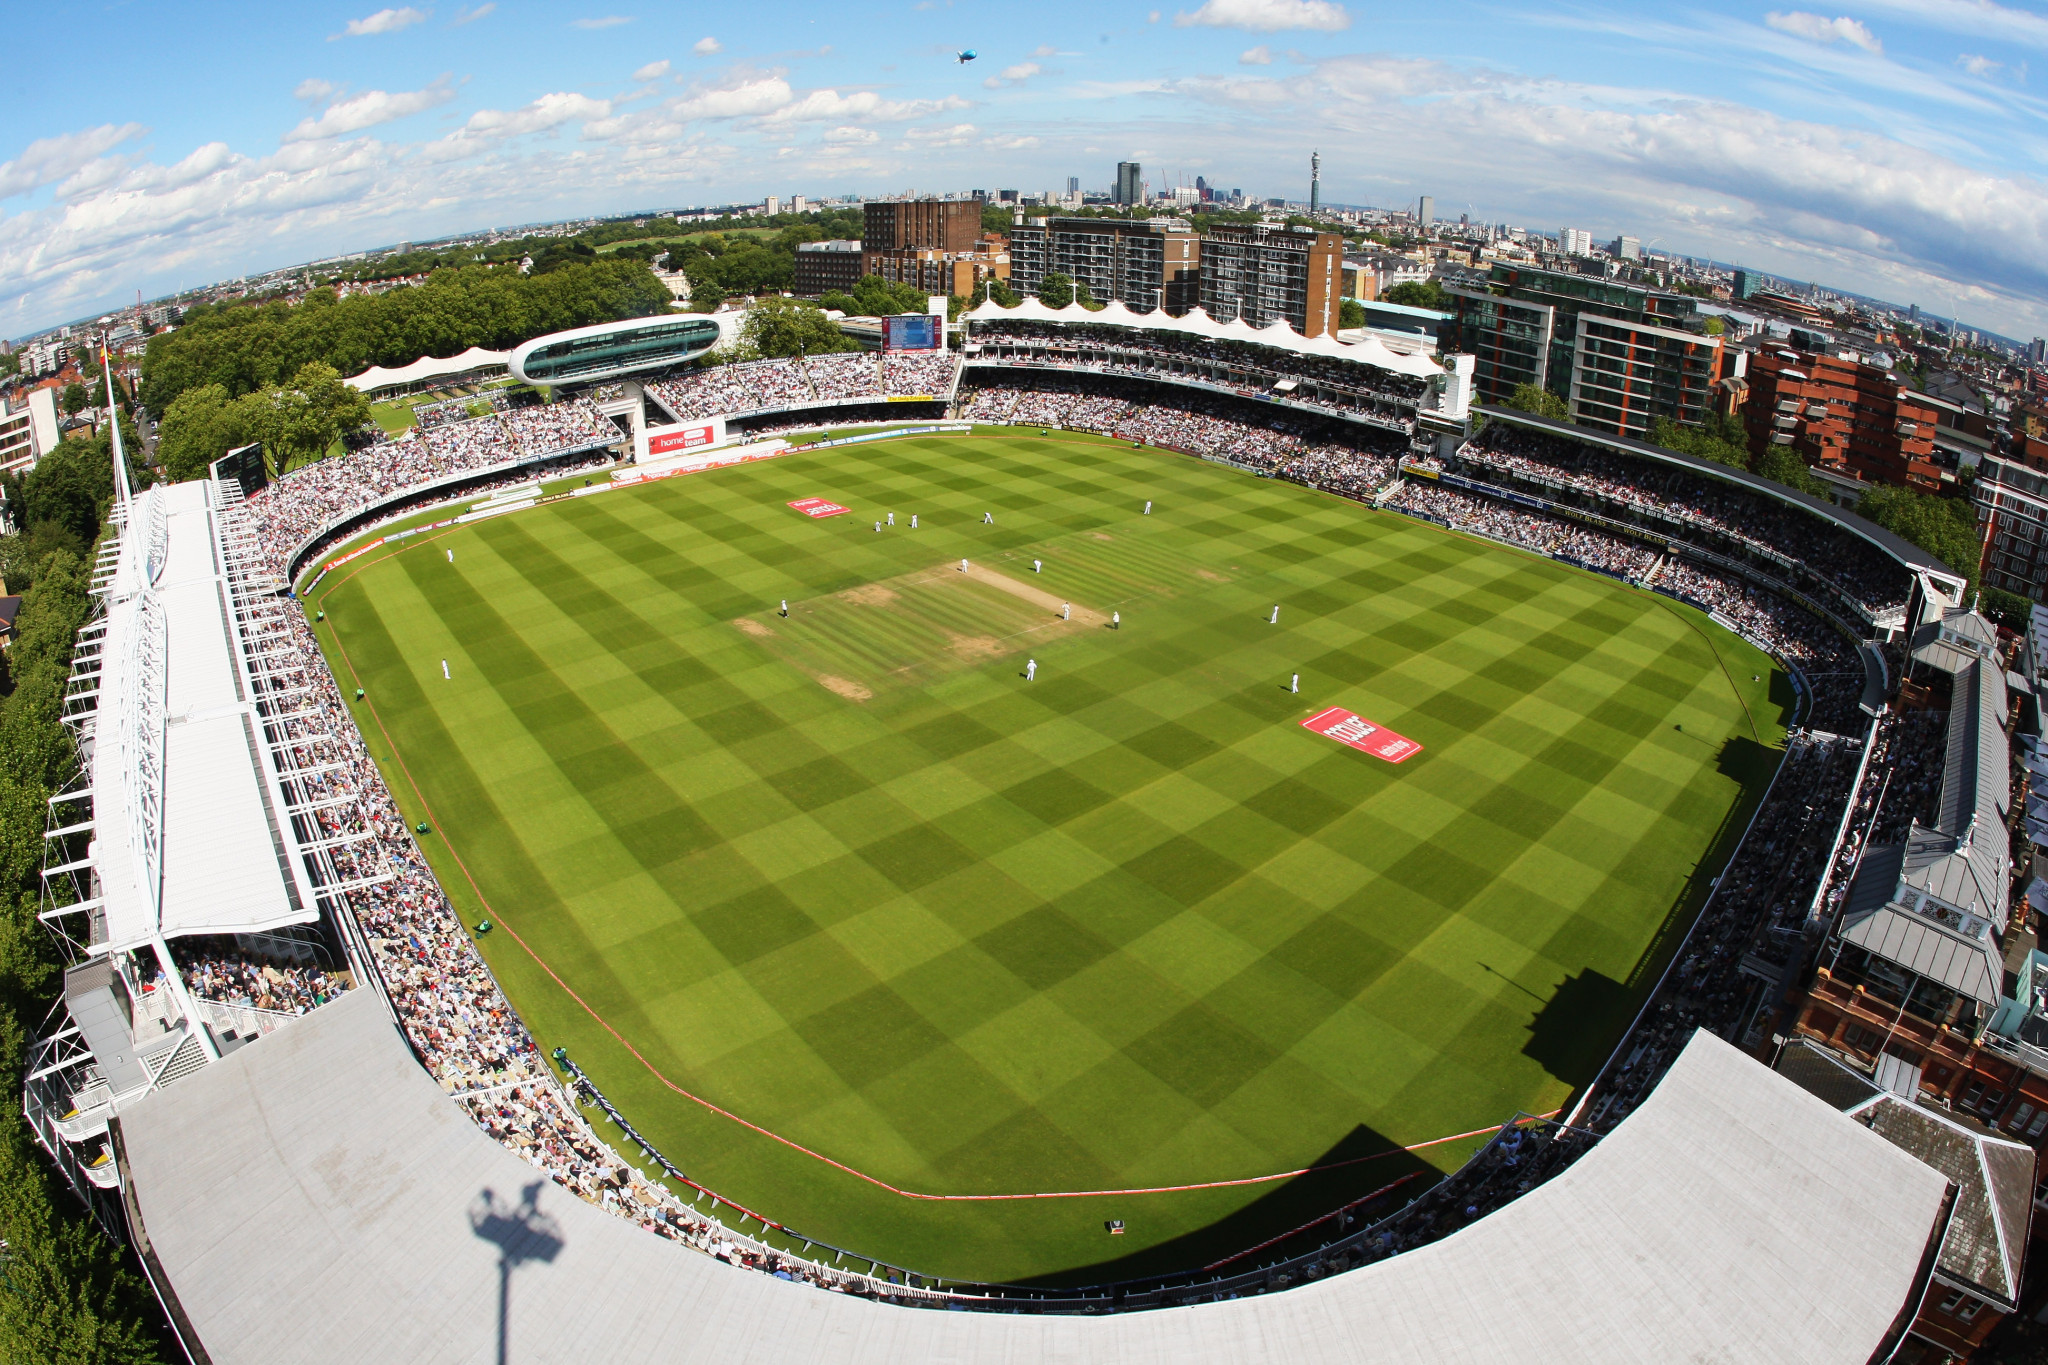 The home of cricket, Lord's, will host the final on July 14 ©Getty Images